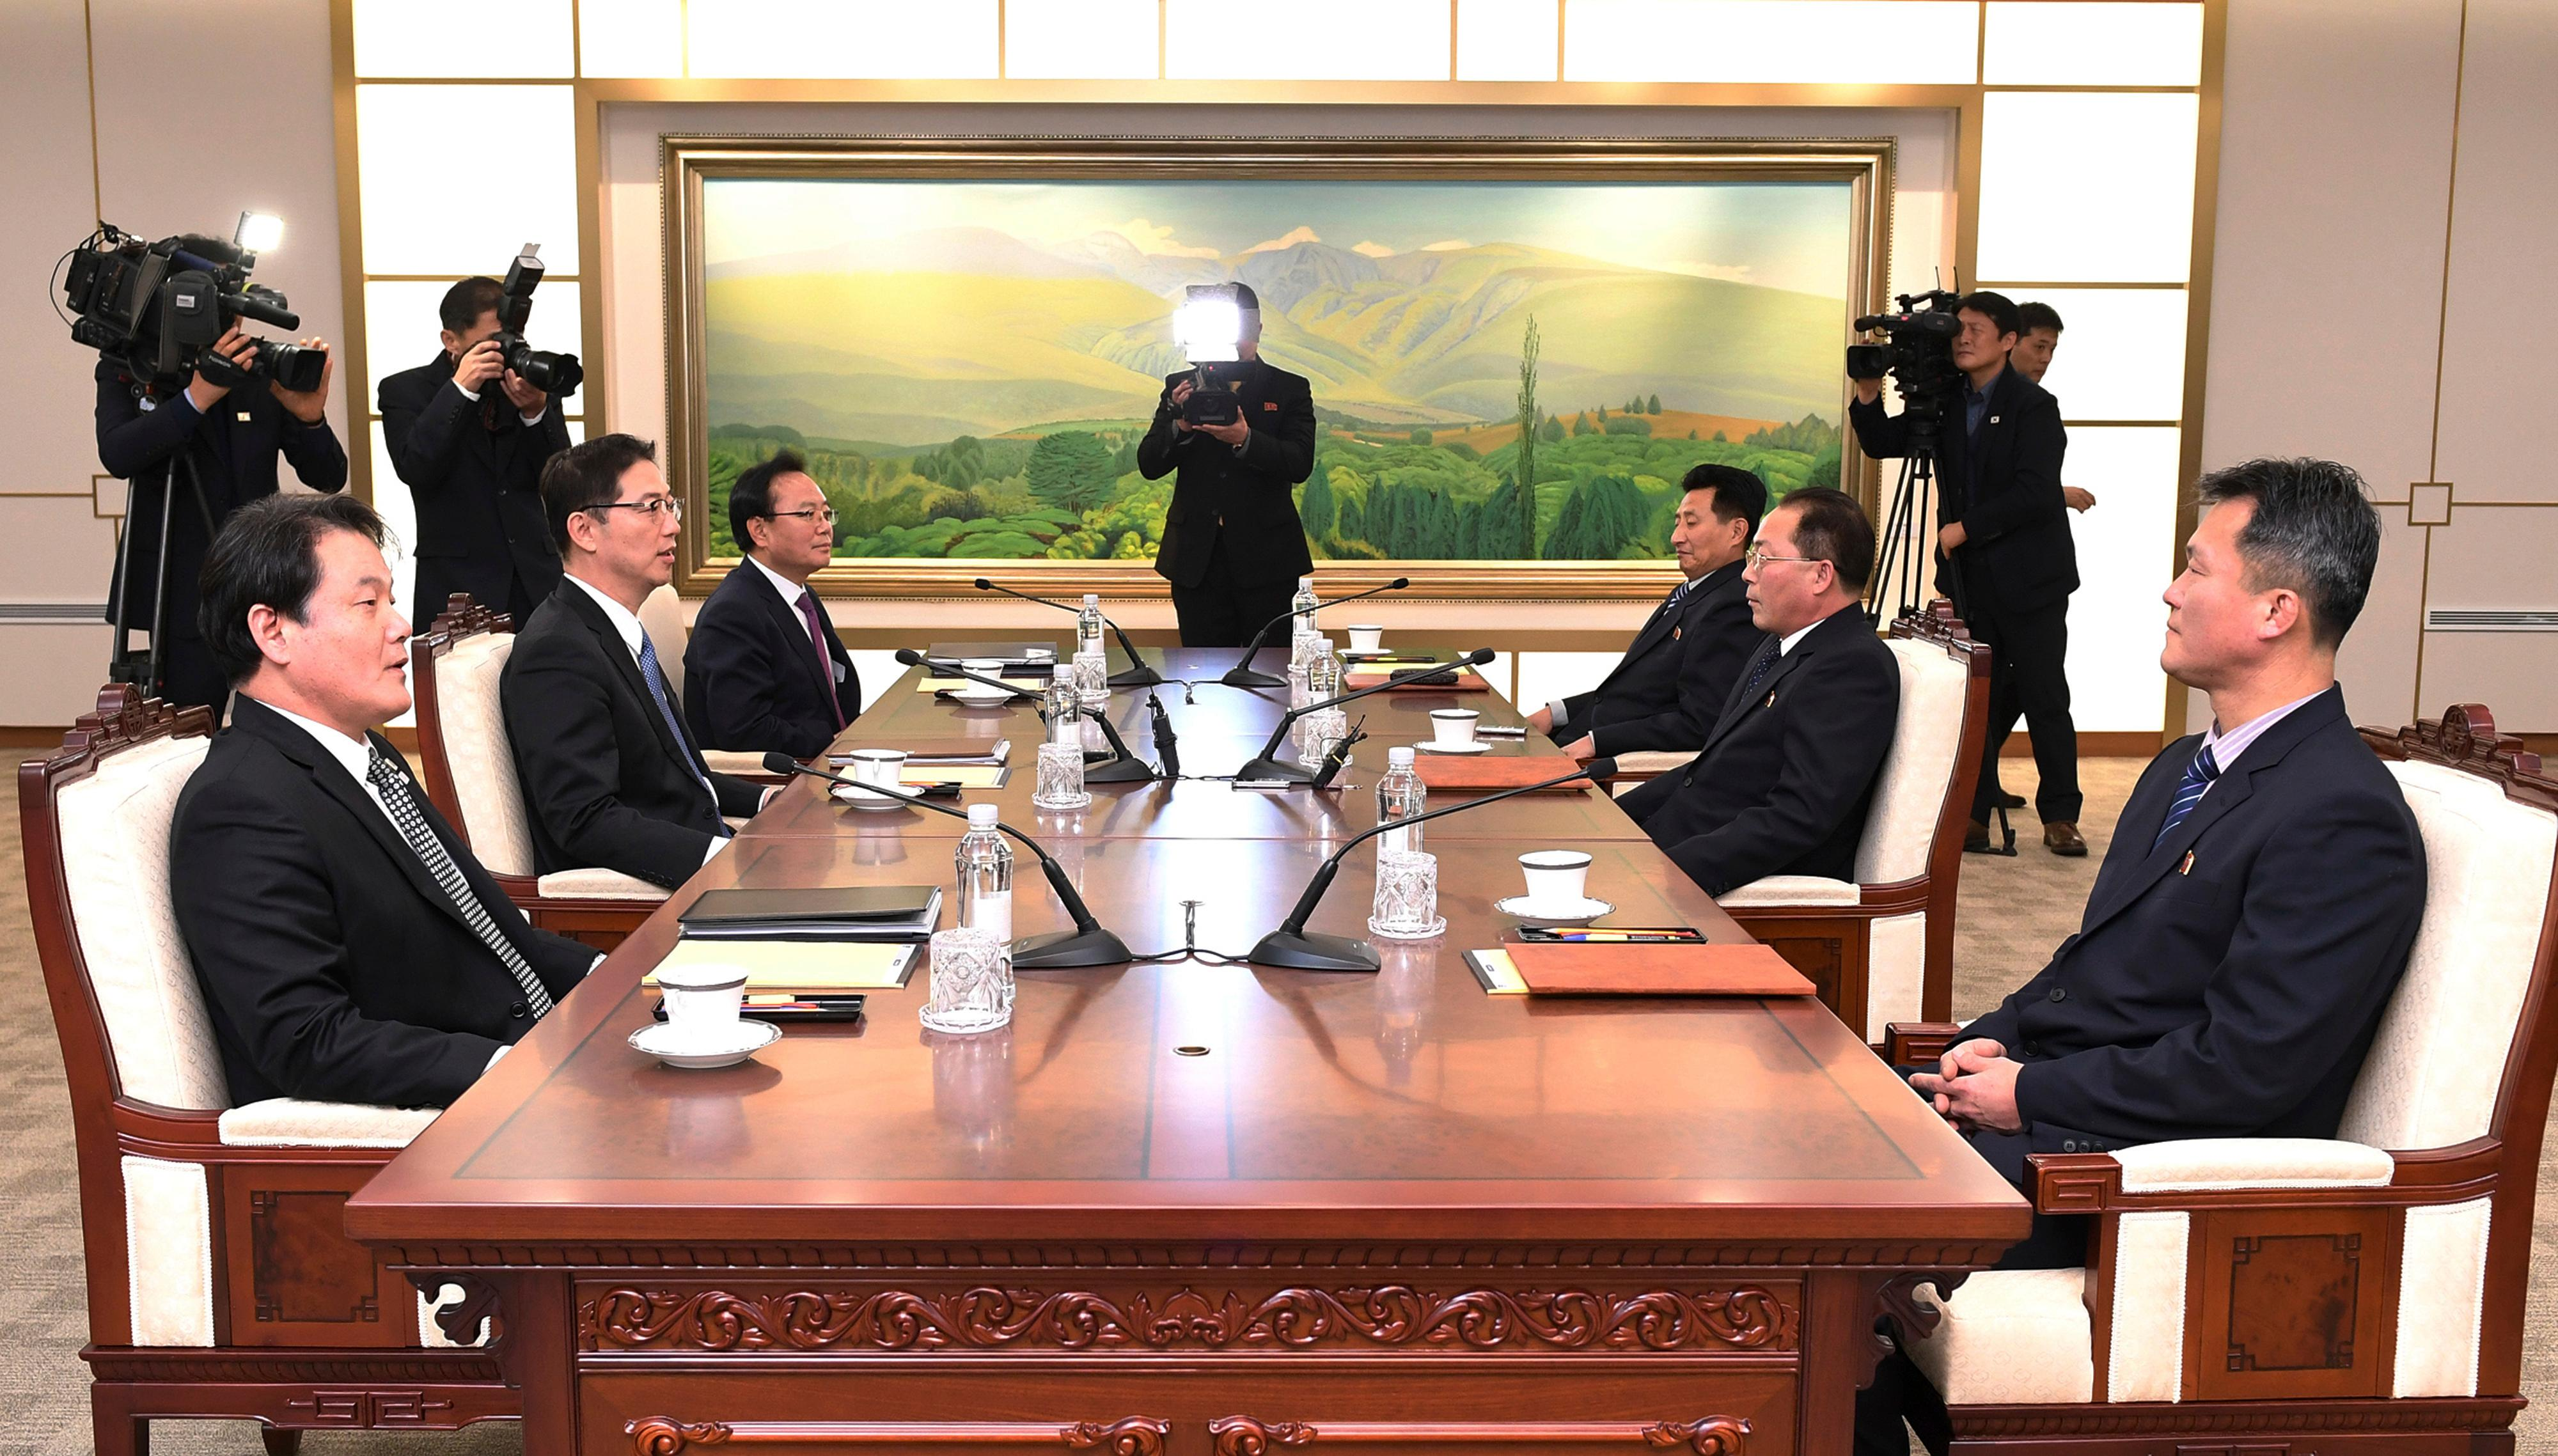 In this photo provided by South Korea Unification Ministry, South Korean Vice Unification Minister Chun Hae-sung, center left, talks with the head of North Korean delegation Jon Jong Su during their meeting at Panmunjom in the Demilitarized Zone in Paju, South Korea, Wednesday, Jan. 17, 2018. The two Koreas are meeting Wednesday for the third time in about 10 days to continue their discussions on Olympics cooperation, days ahead of talks with the IOC on North Korean participation in the upcoming Winter Games in the South. (South Korea Unification Ministry via AP)